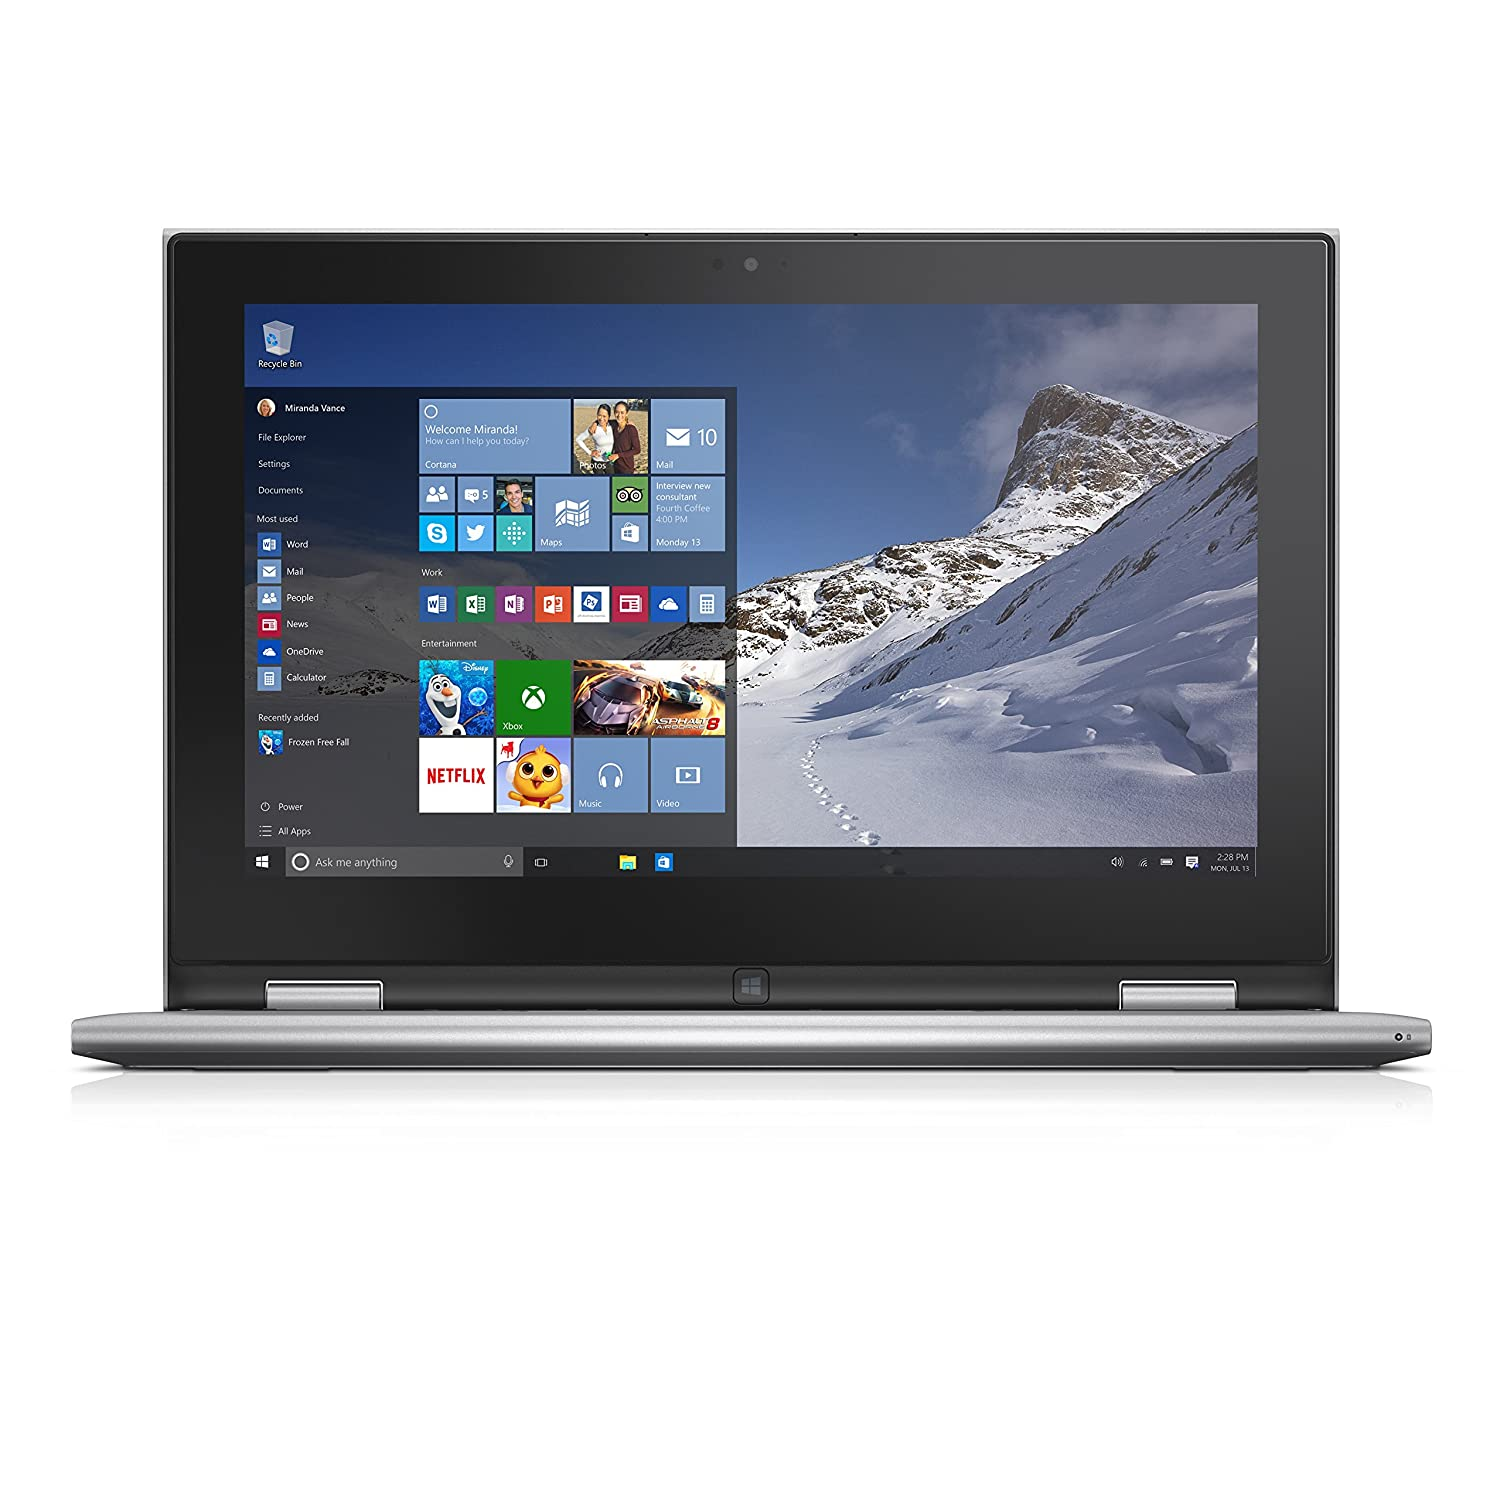 Dell Inspiron i3000-10099SLV 11.6 Inch Touchscreen 2-in-1 Laptop (Intel Pentium, 4 GB RAM, 500 GB HDD, Moonlight Silver)